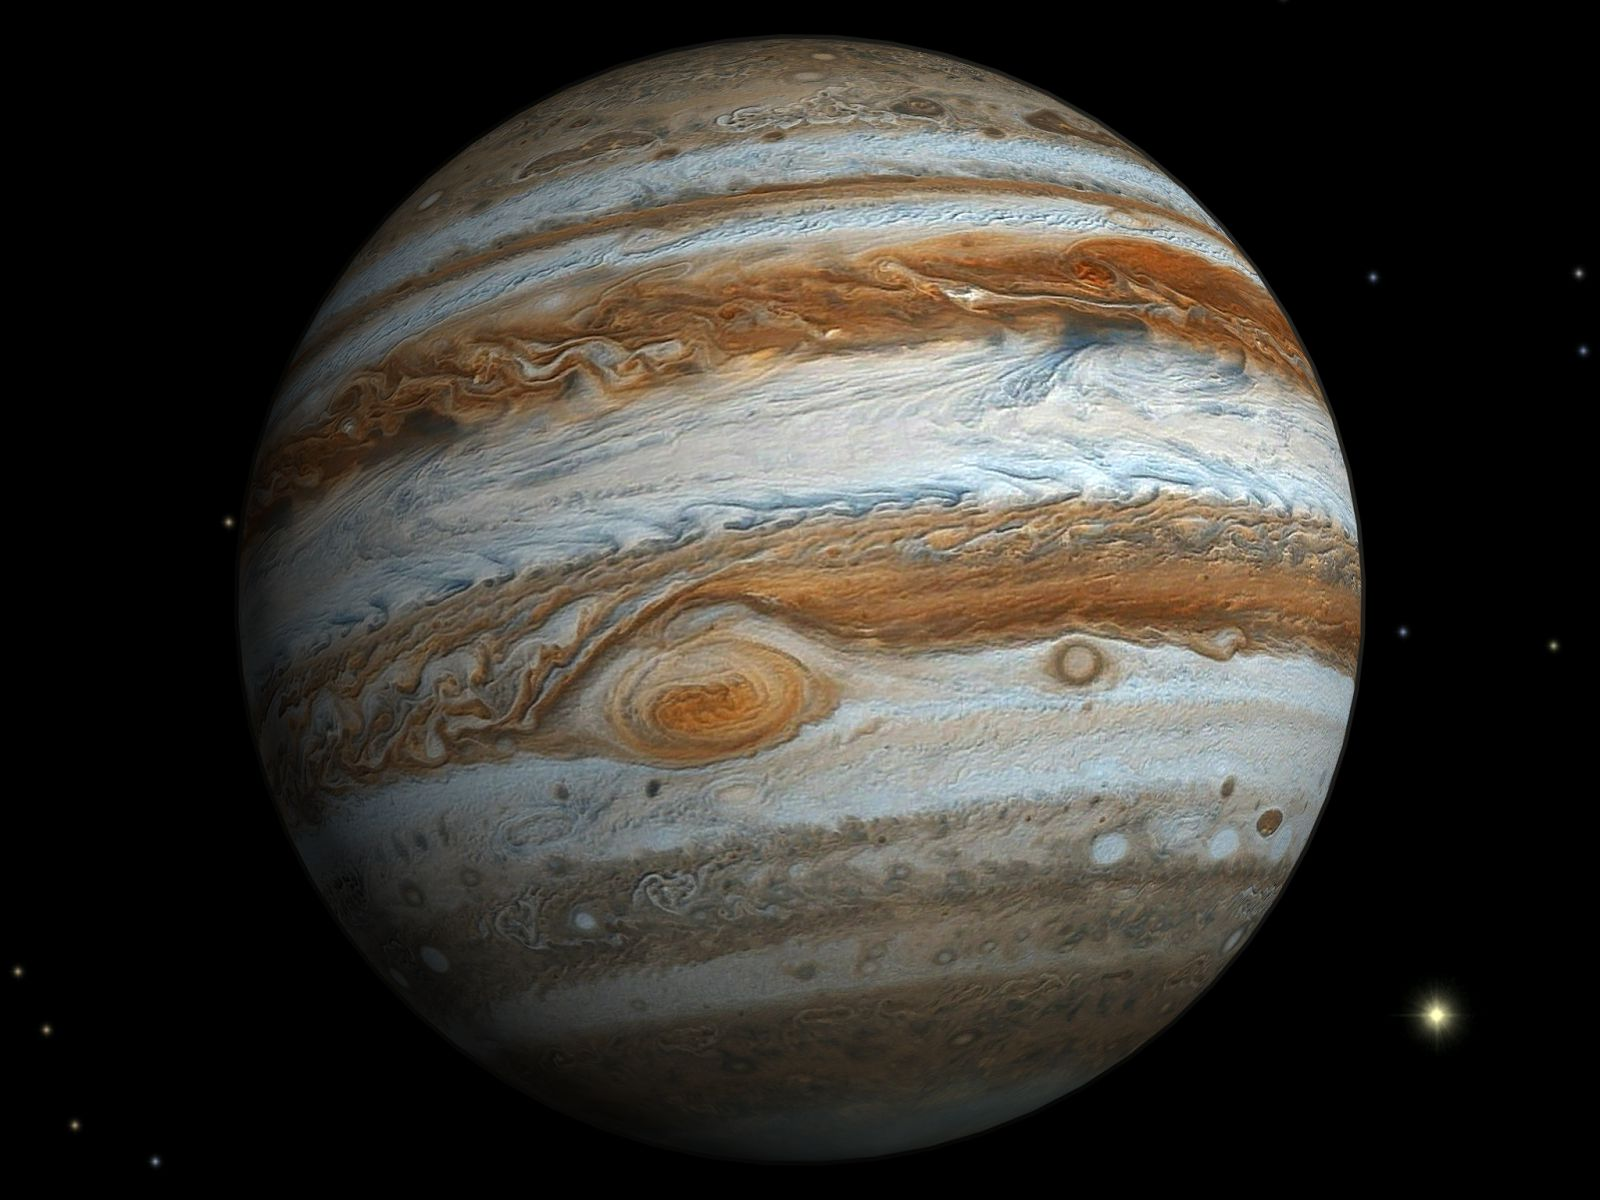 https://www.universetoday.com/38187/which-planet-has-the-most-moons/